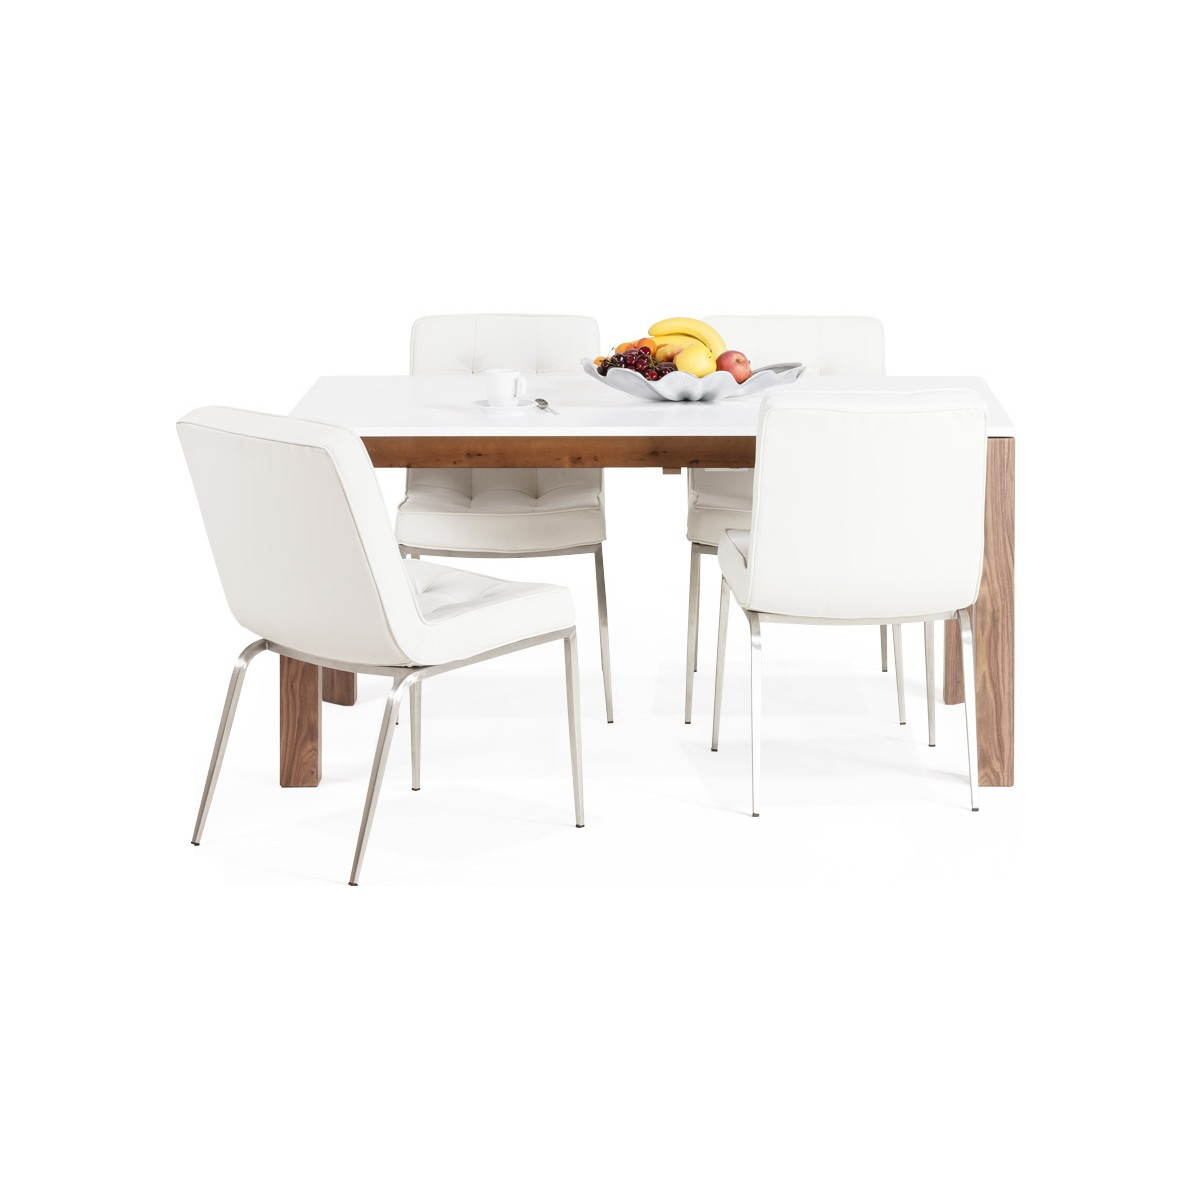 Table ronde bois blanc maison design for Table ronde blanc